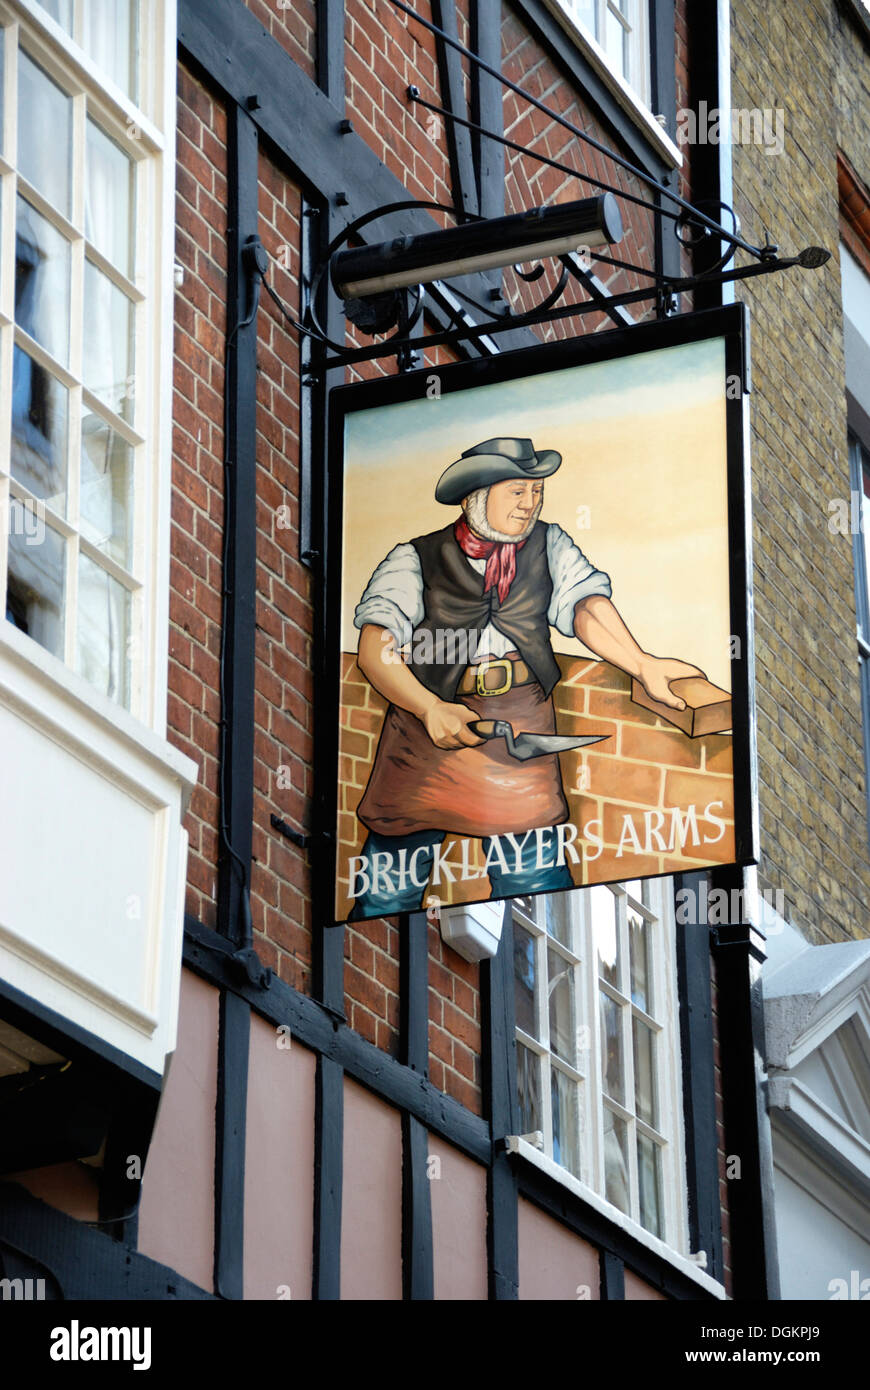 Bricklayers Arms pub in Gresse Street off Tottenham Court Road. - Stock Image